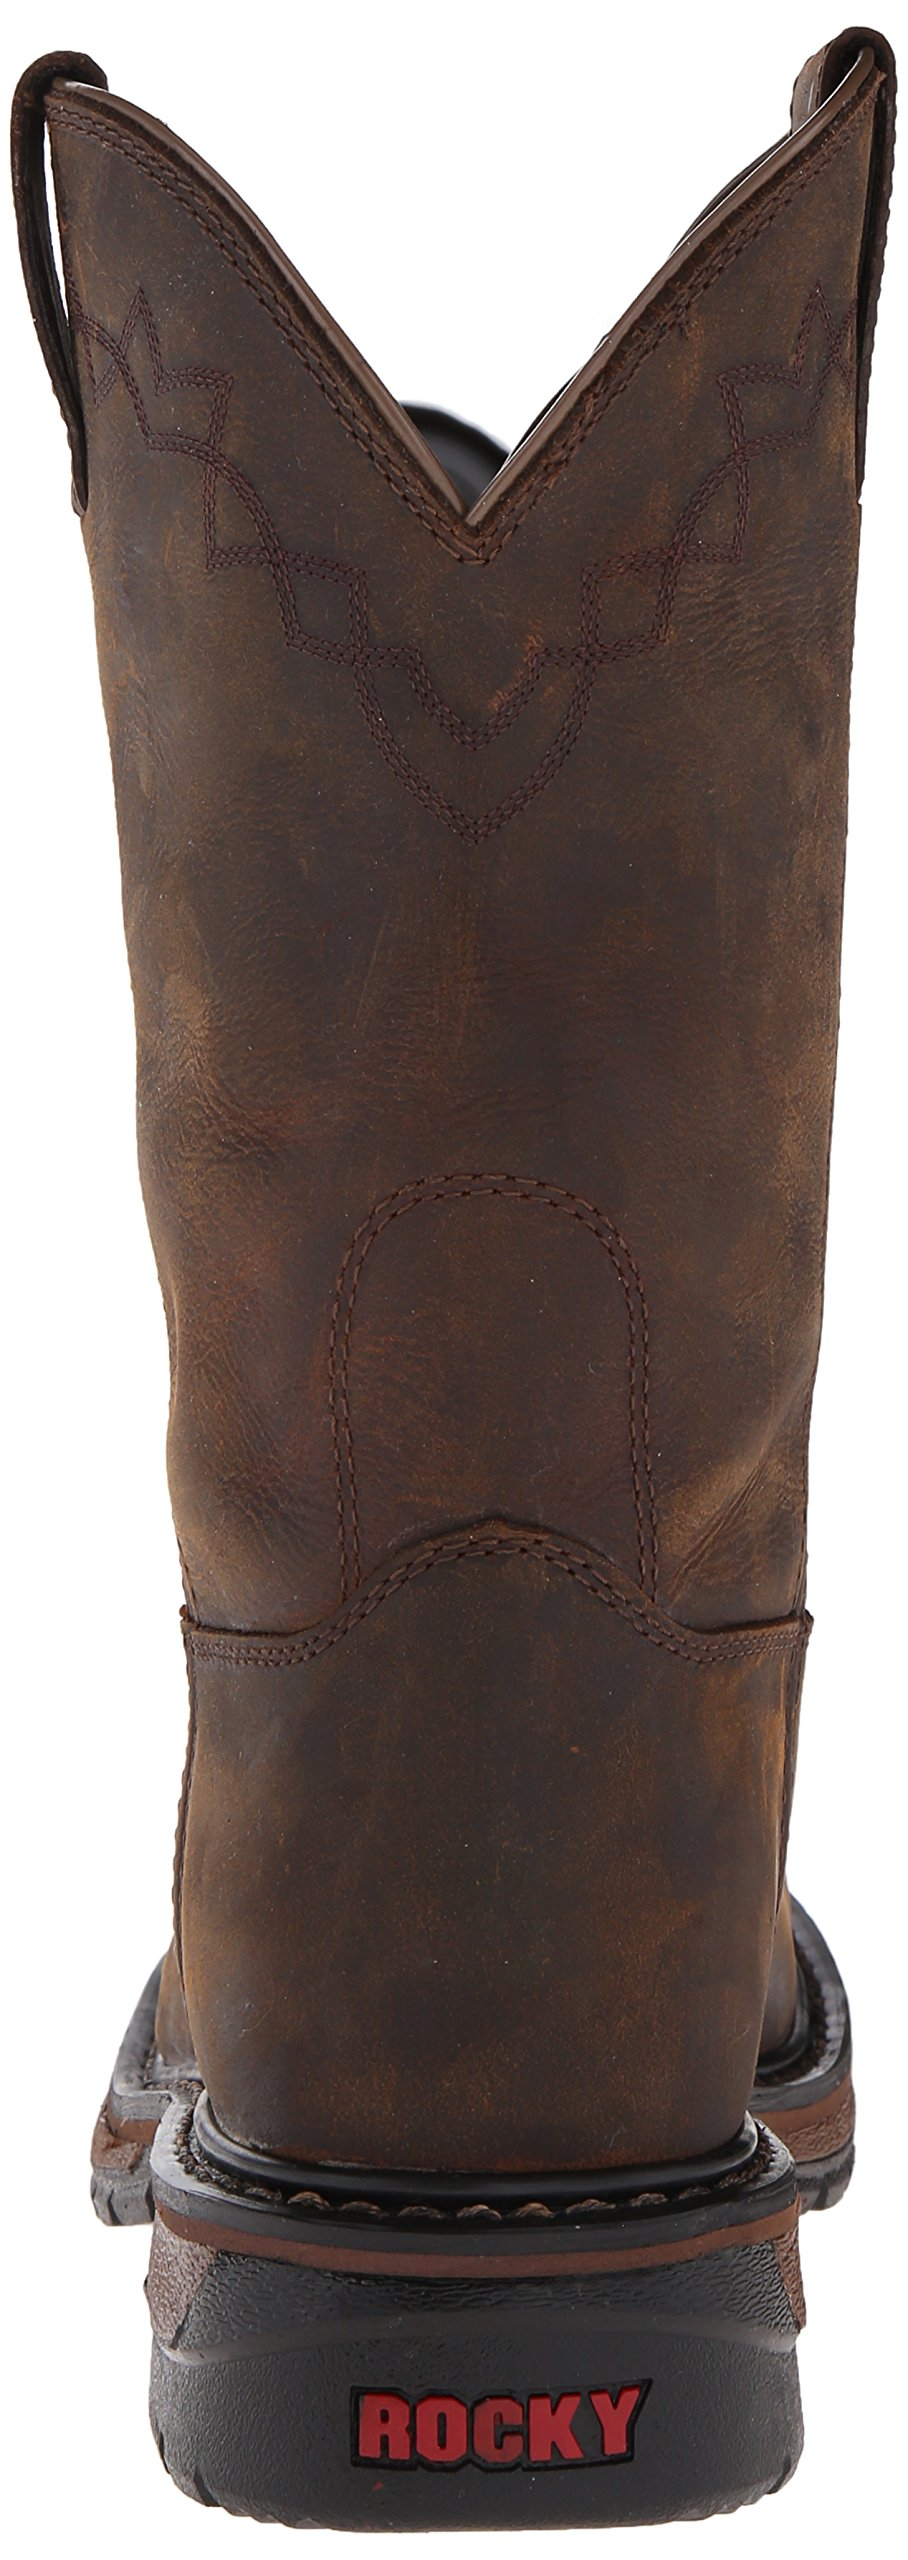 Rocky Men's RKW0117 Boot, Dark Brown, 10 M US by Rocky (Image #2)